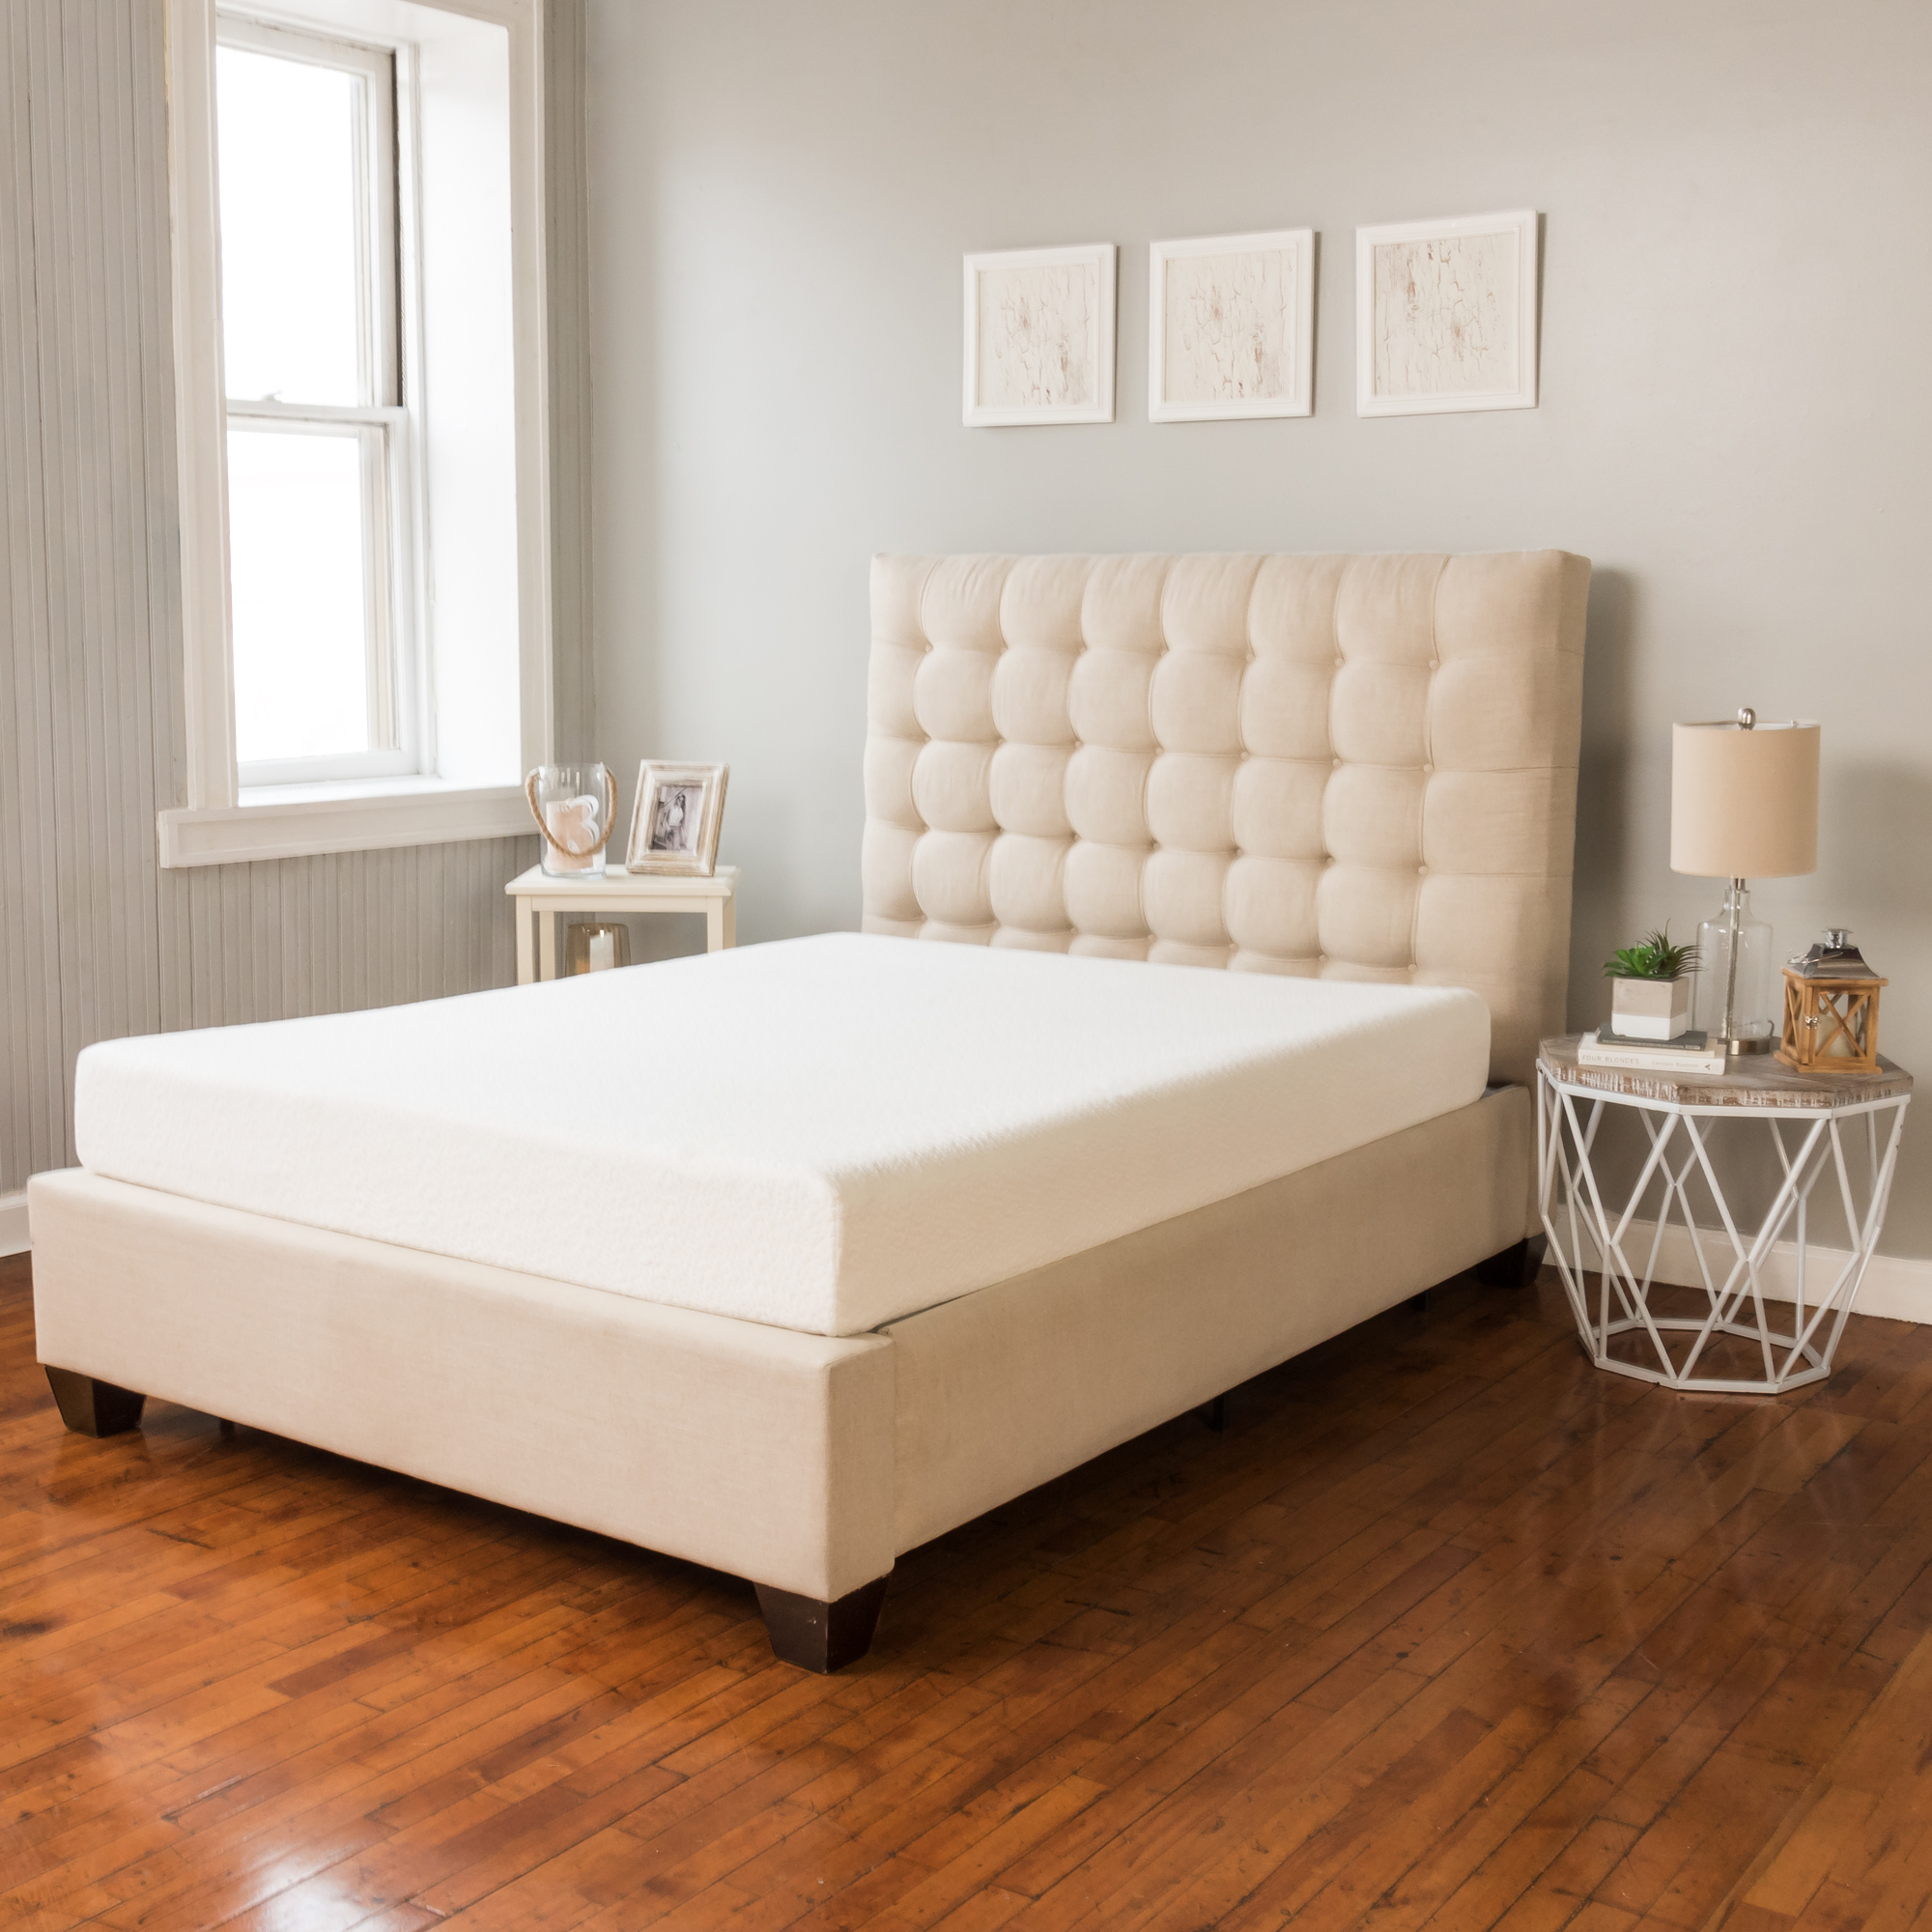 Modern Sleep Memory Foam 8-Inch Mattress, Multiple Sizes